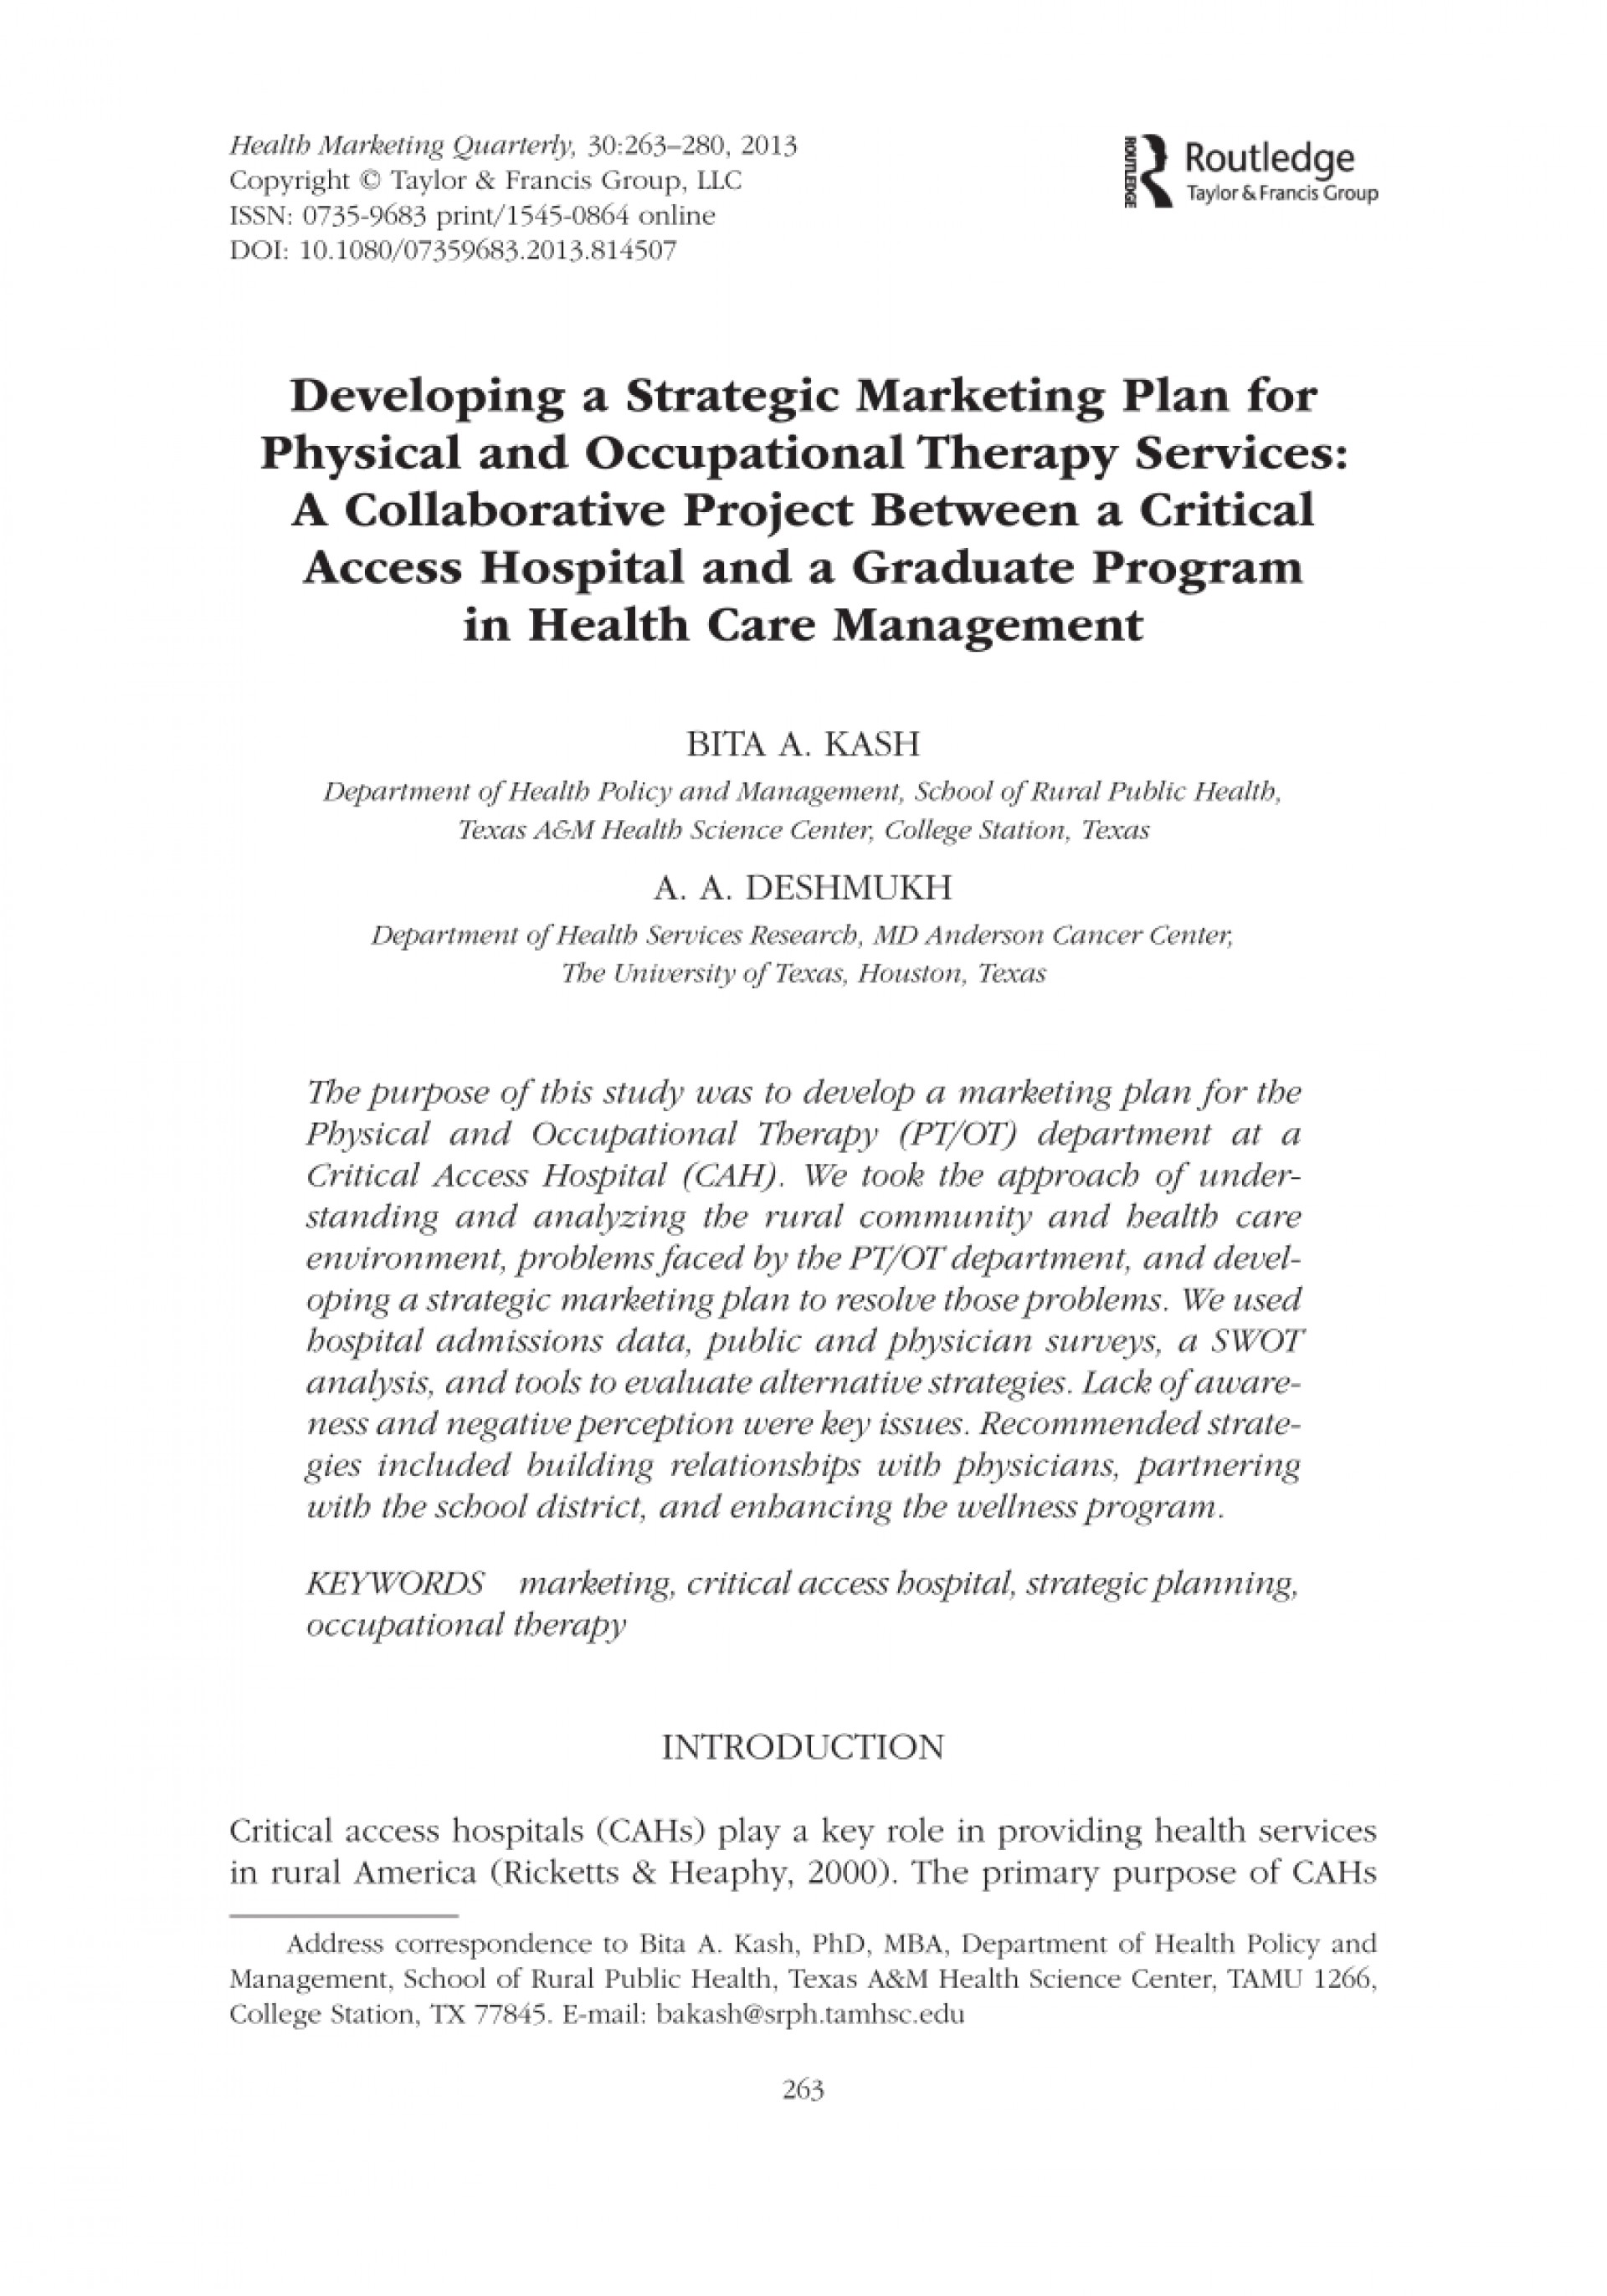 024 Cancer Research Paper Example Marketing Plan Mba Image Hd Largepreview For Excellent Blood Papers Sponsor Form 1920